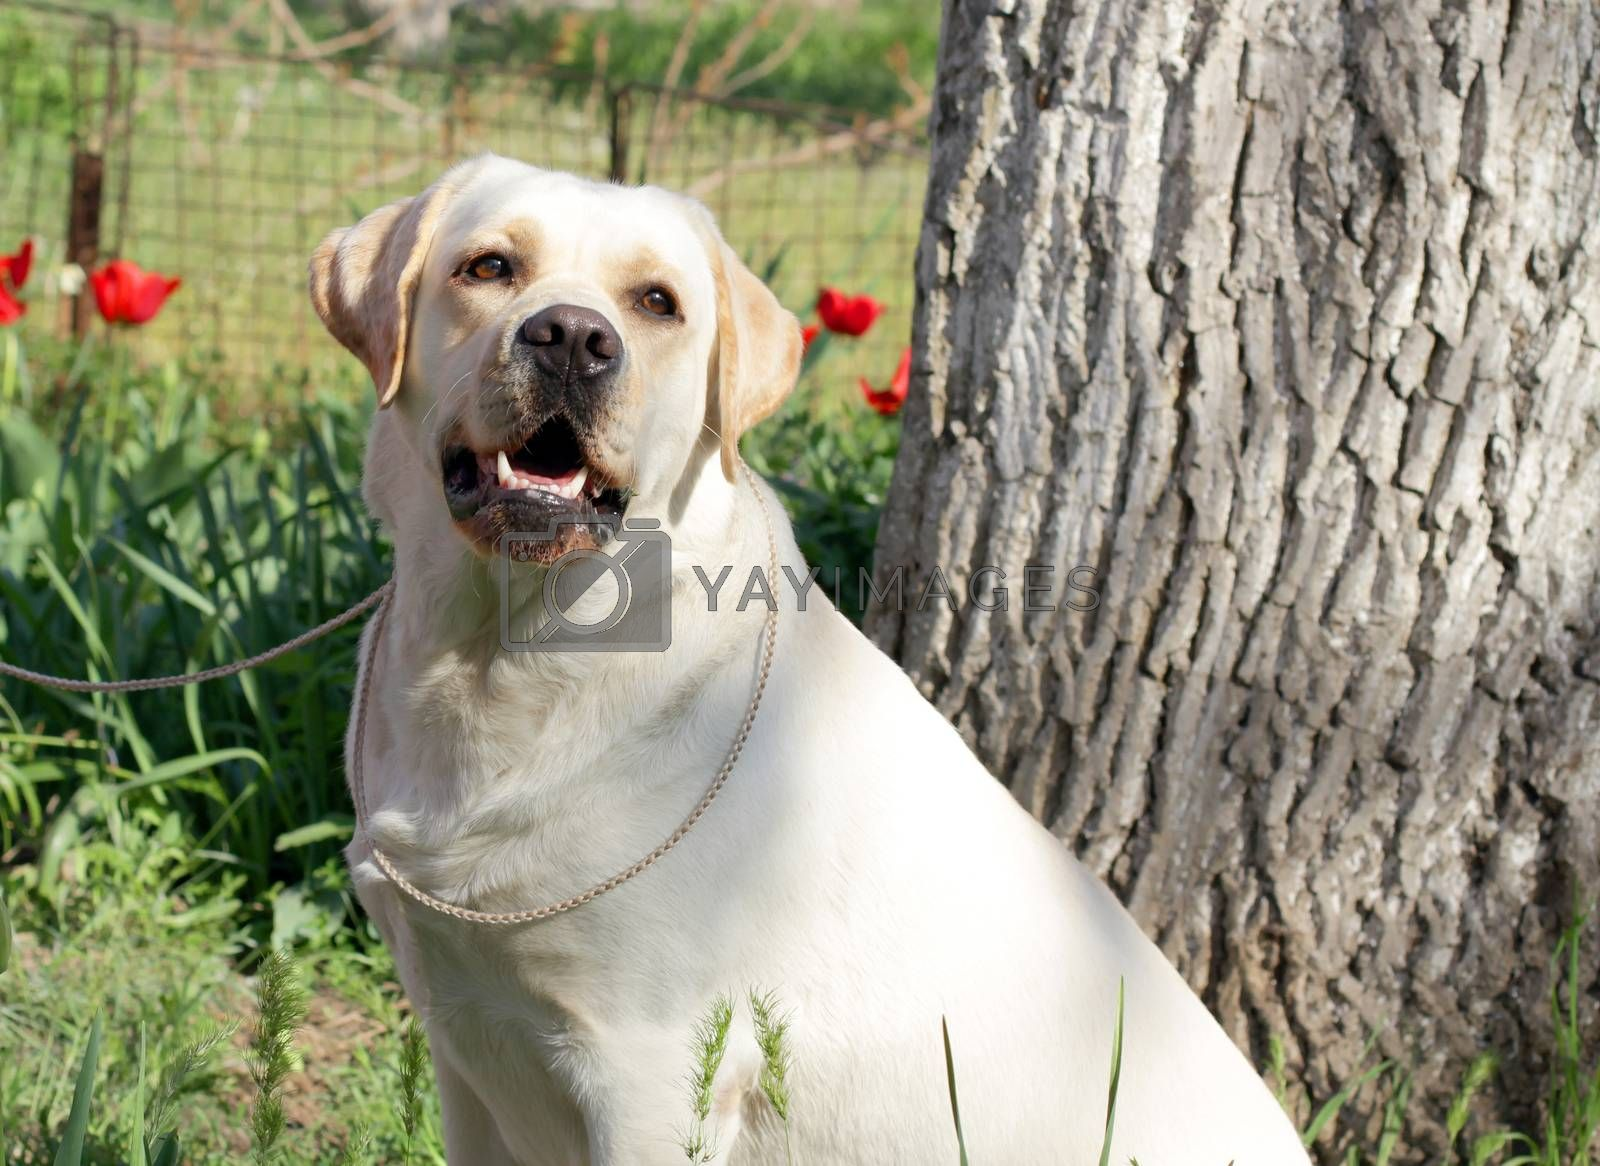 Royalty free image of yellow labrador in spring by Yarvet